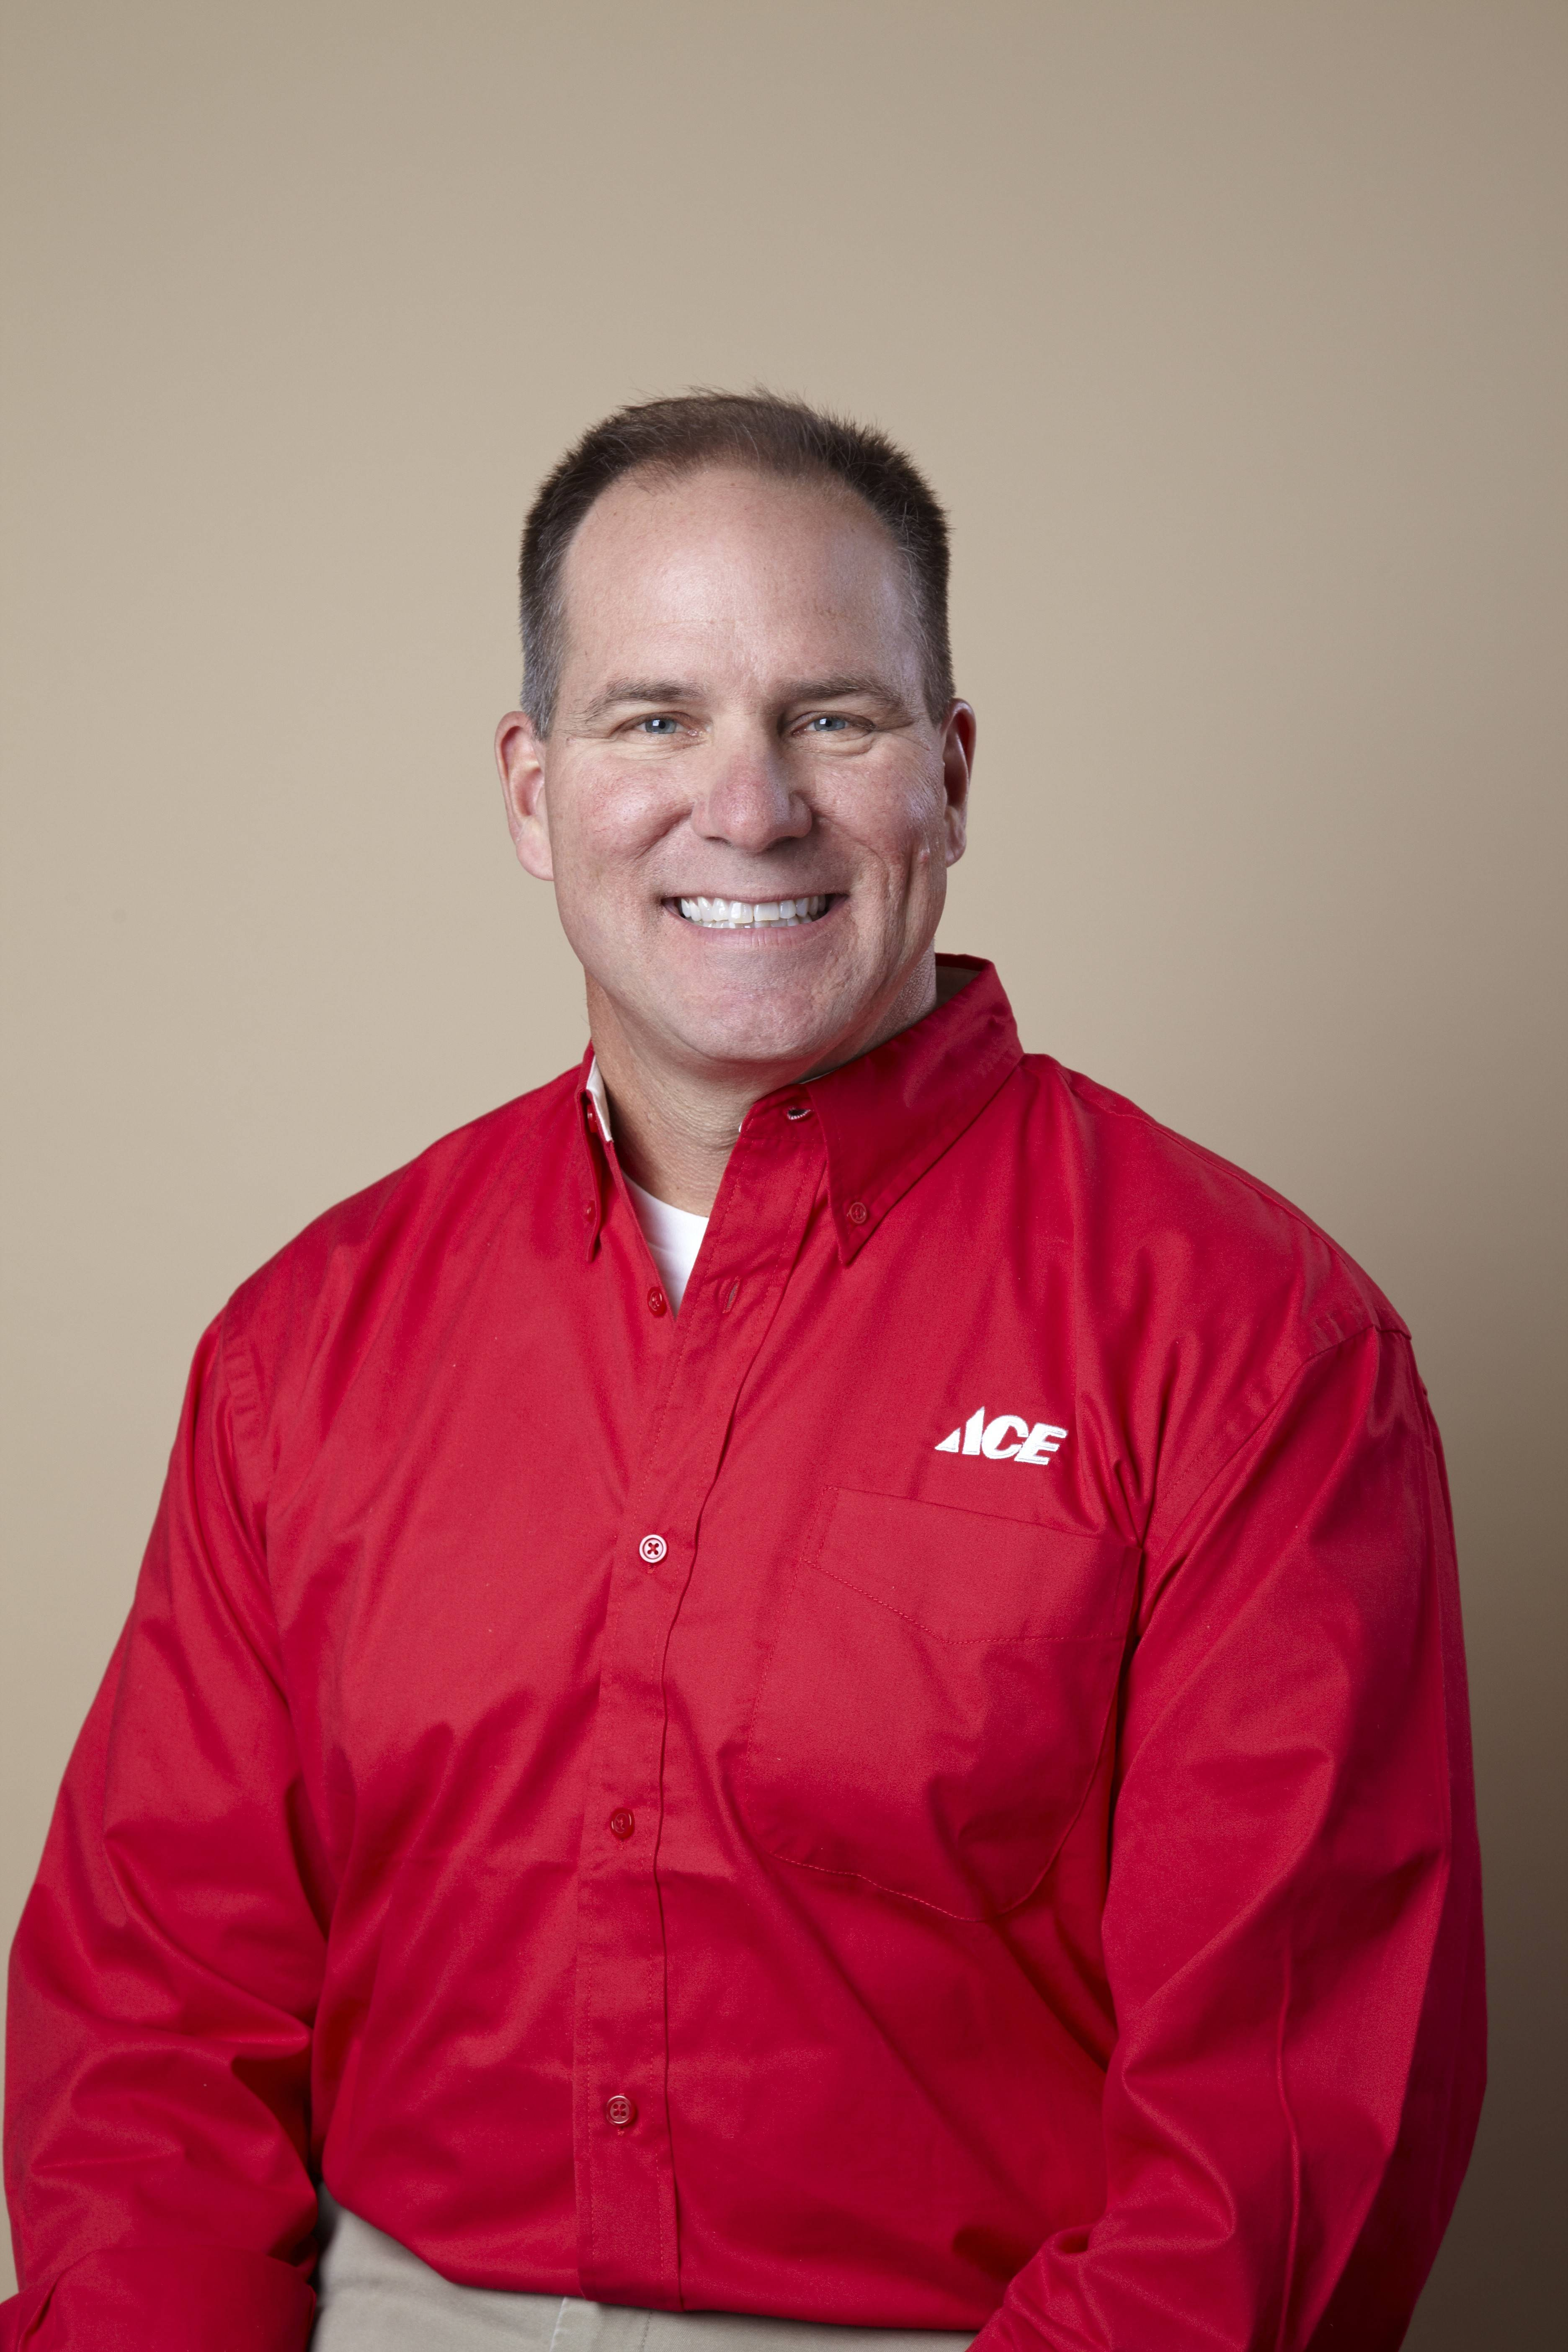 Lou Manfredini, known as WGN Radio's Mr. Fixit, also owns Ace Hardware stores in Chicago and Villa Park. He plans to open more stores in the suburbs.